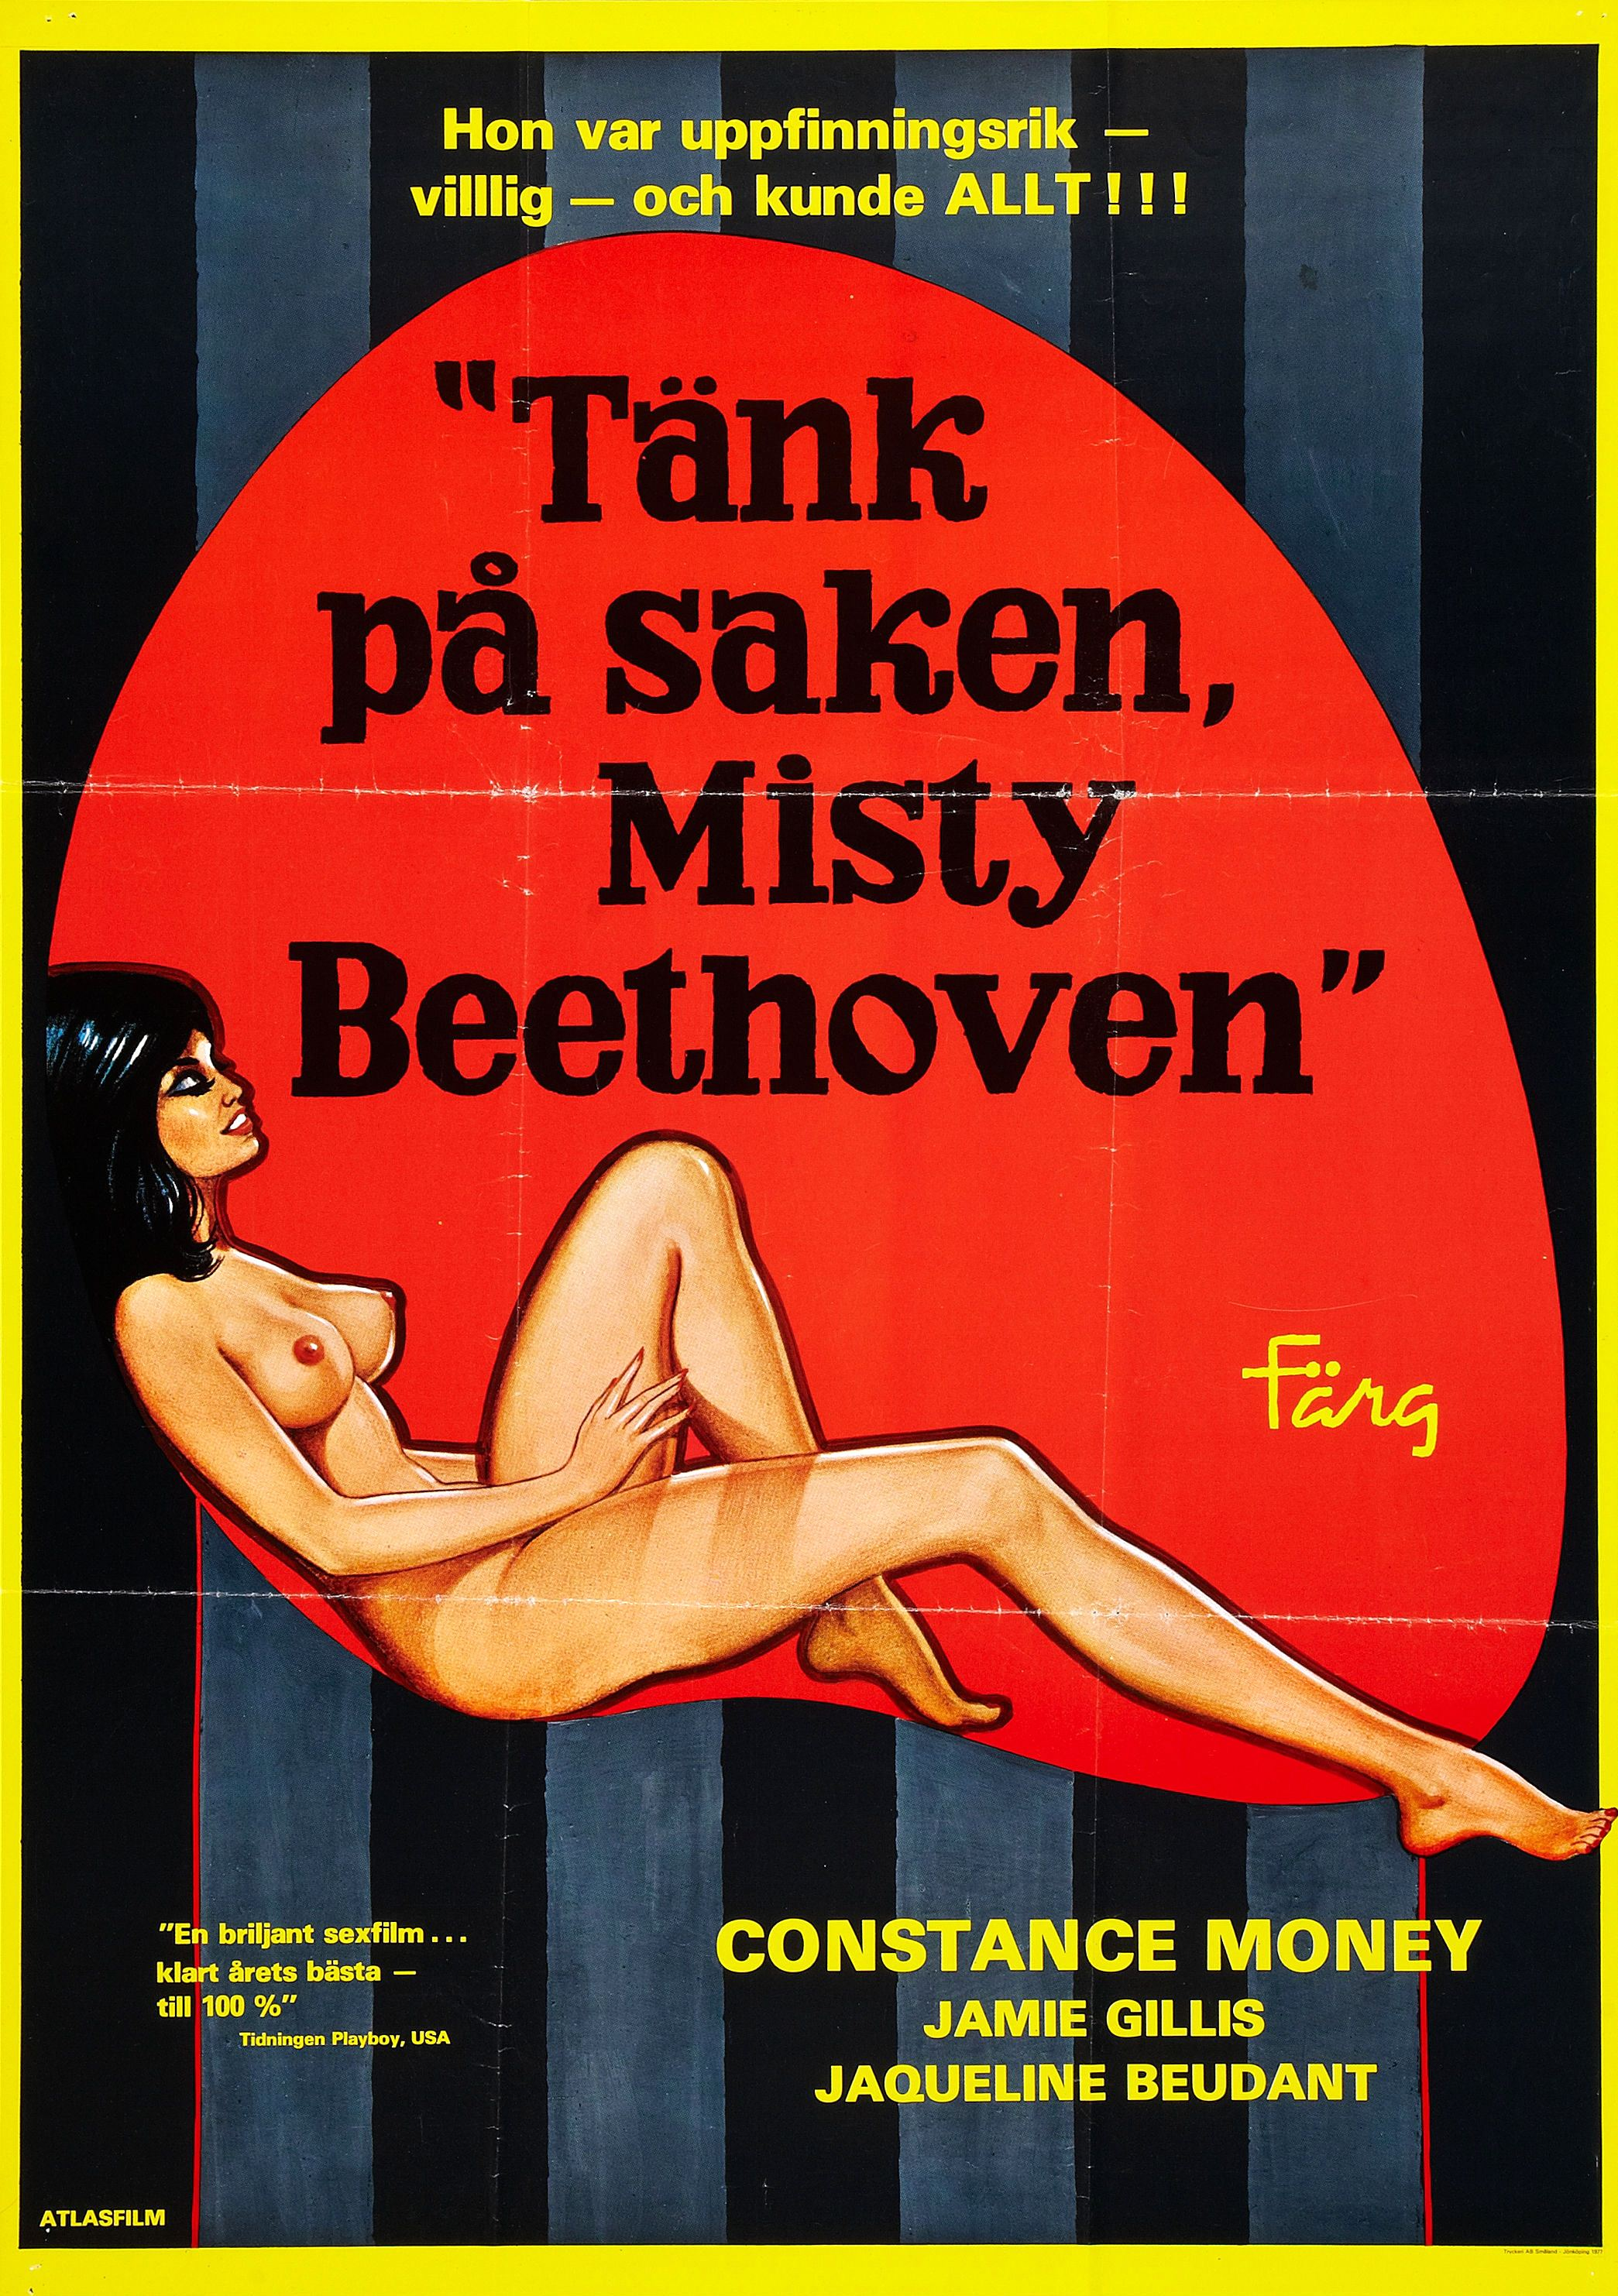 opening_of_misty_beethoven_poster_02.jpg